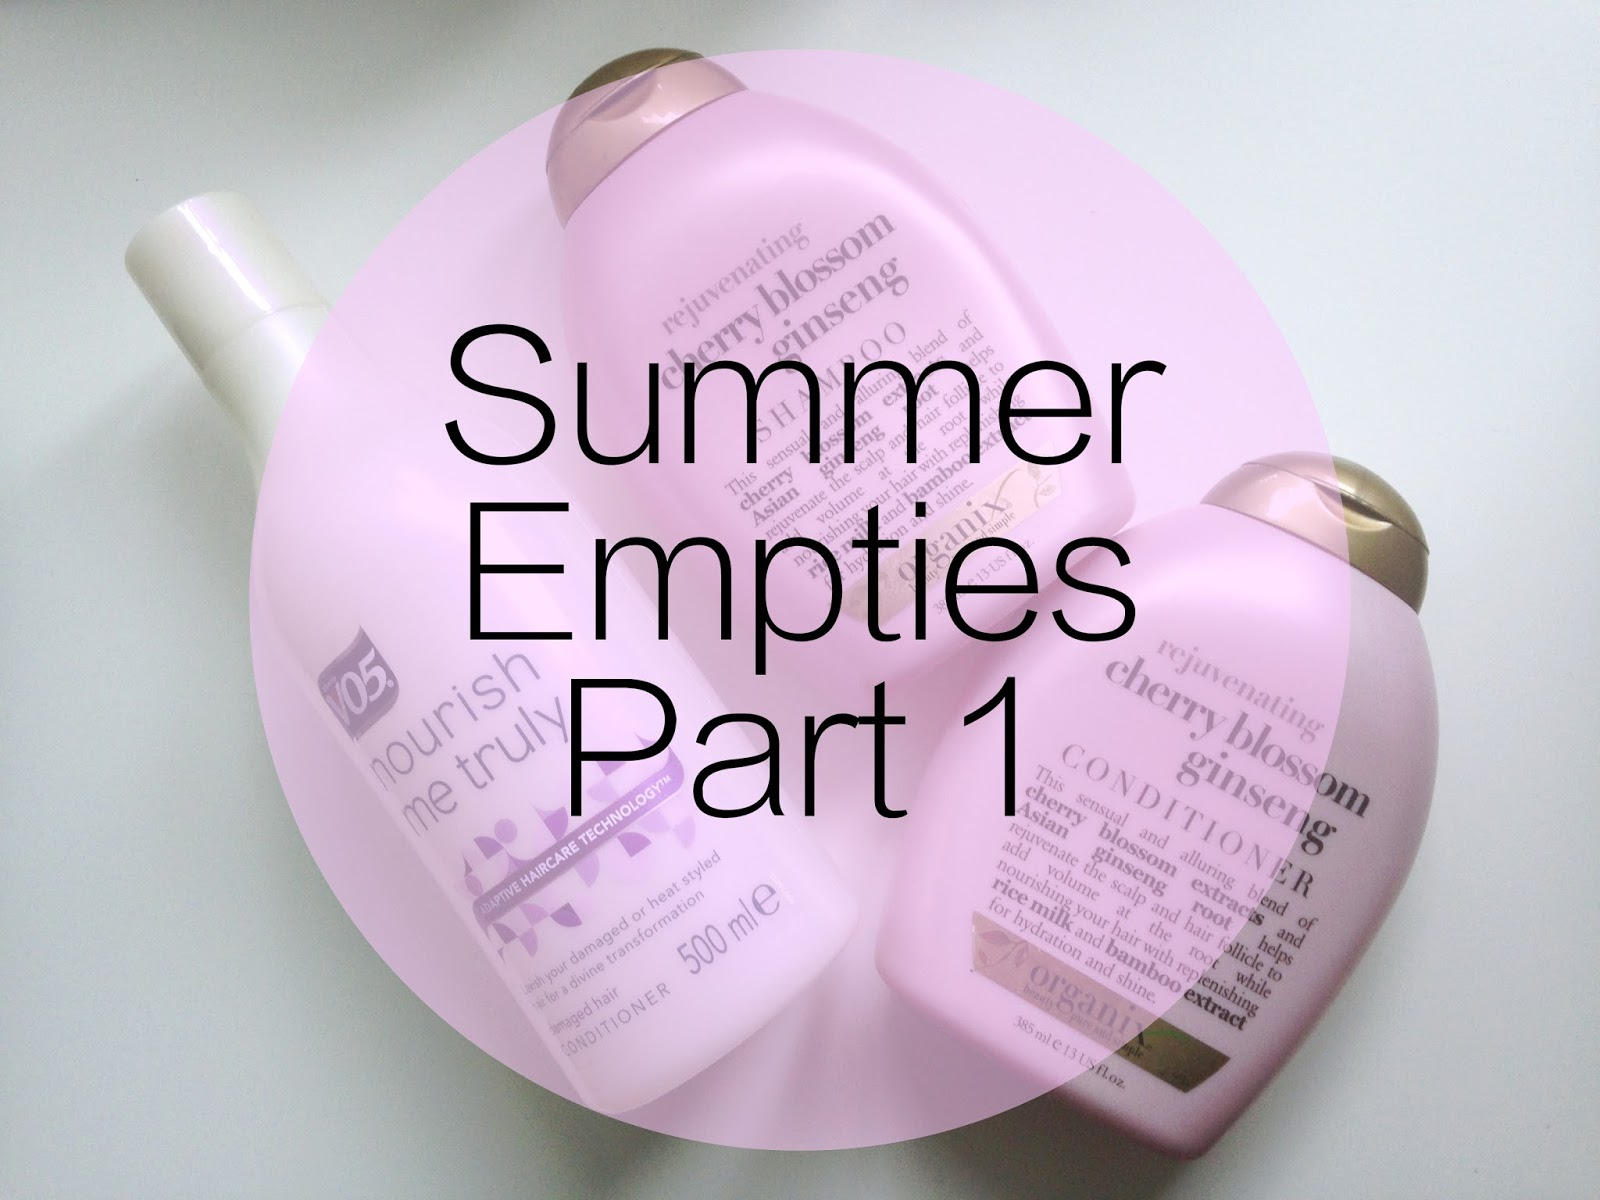 Summer Empties Part 1